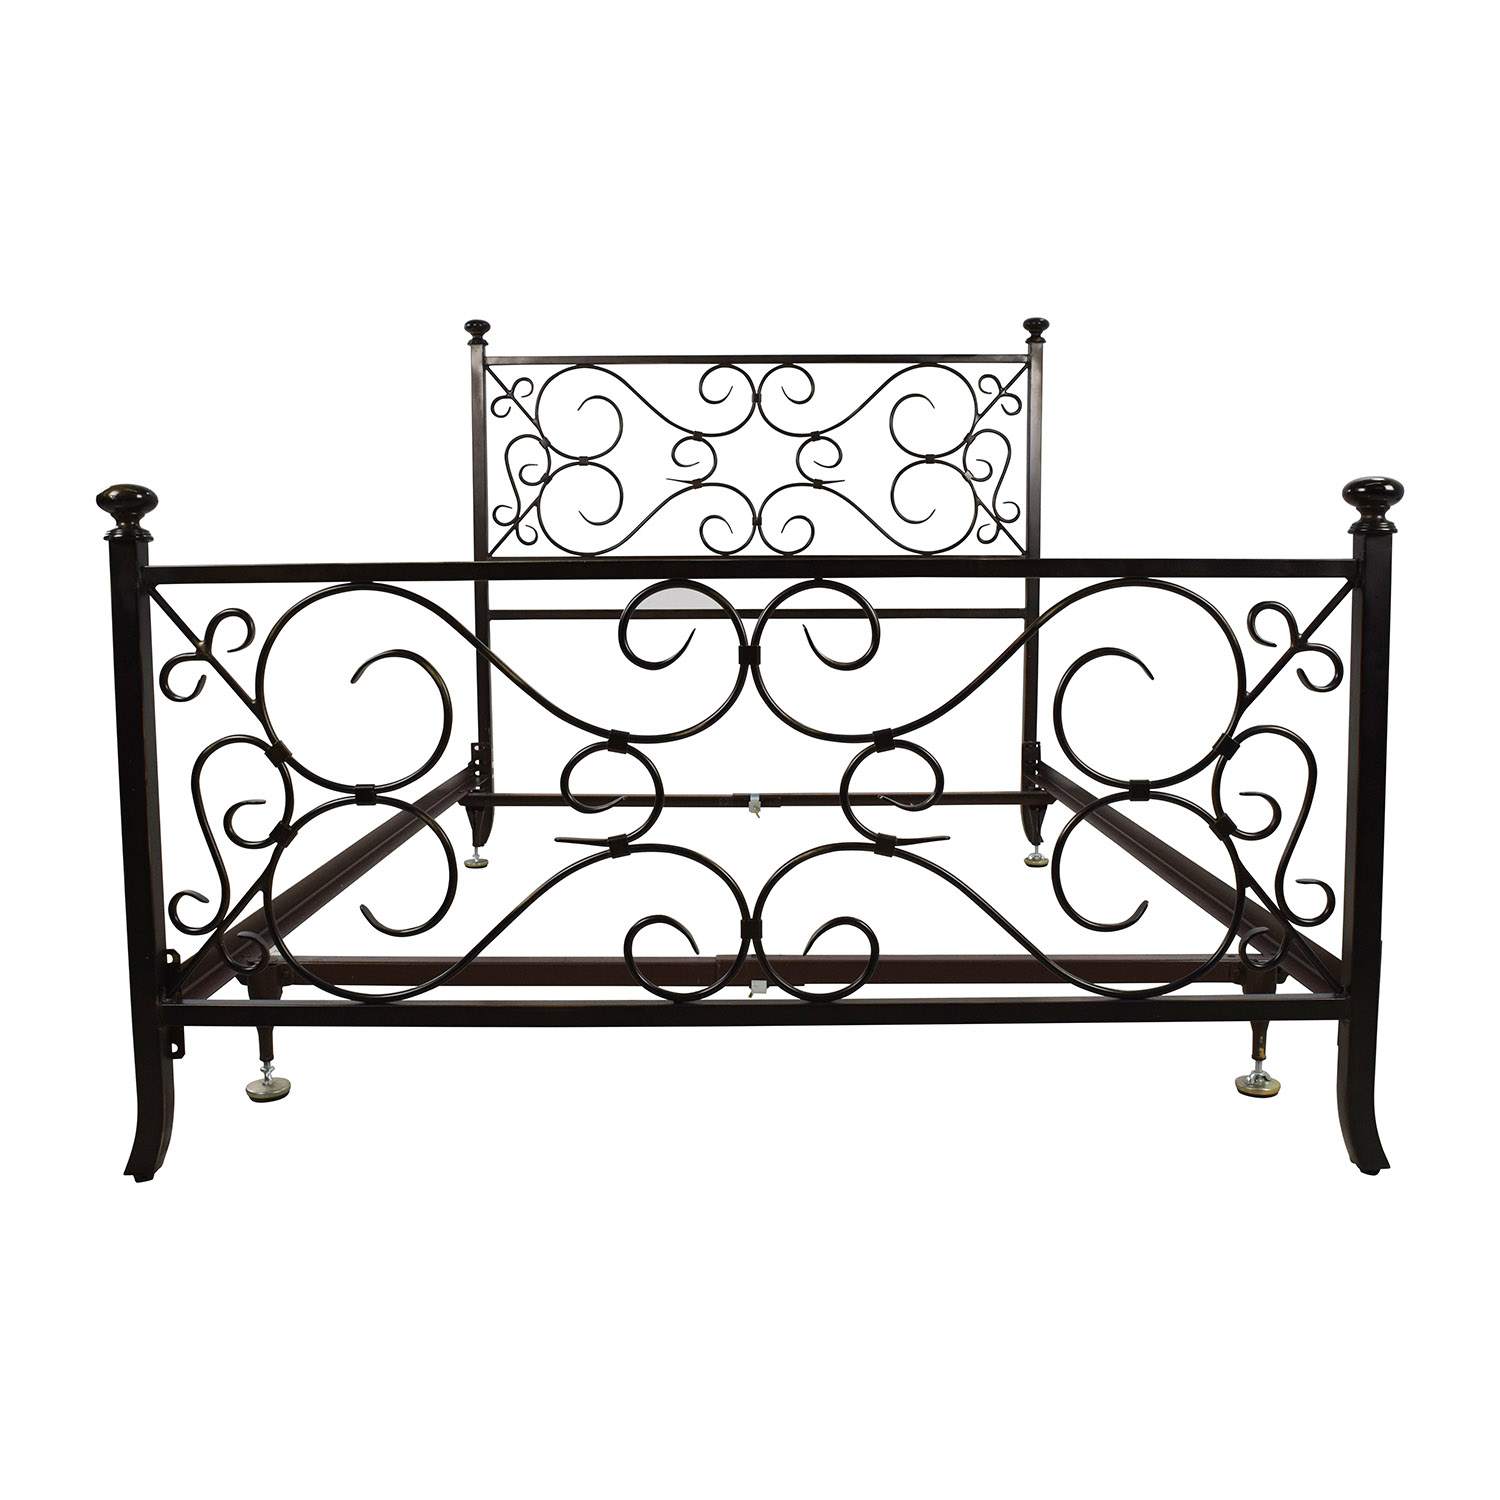 72% OFF - Casana Furniture Casana Furniture Queen Wood Bed Frame / Beds